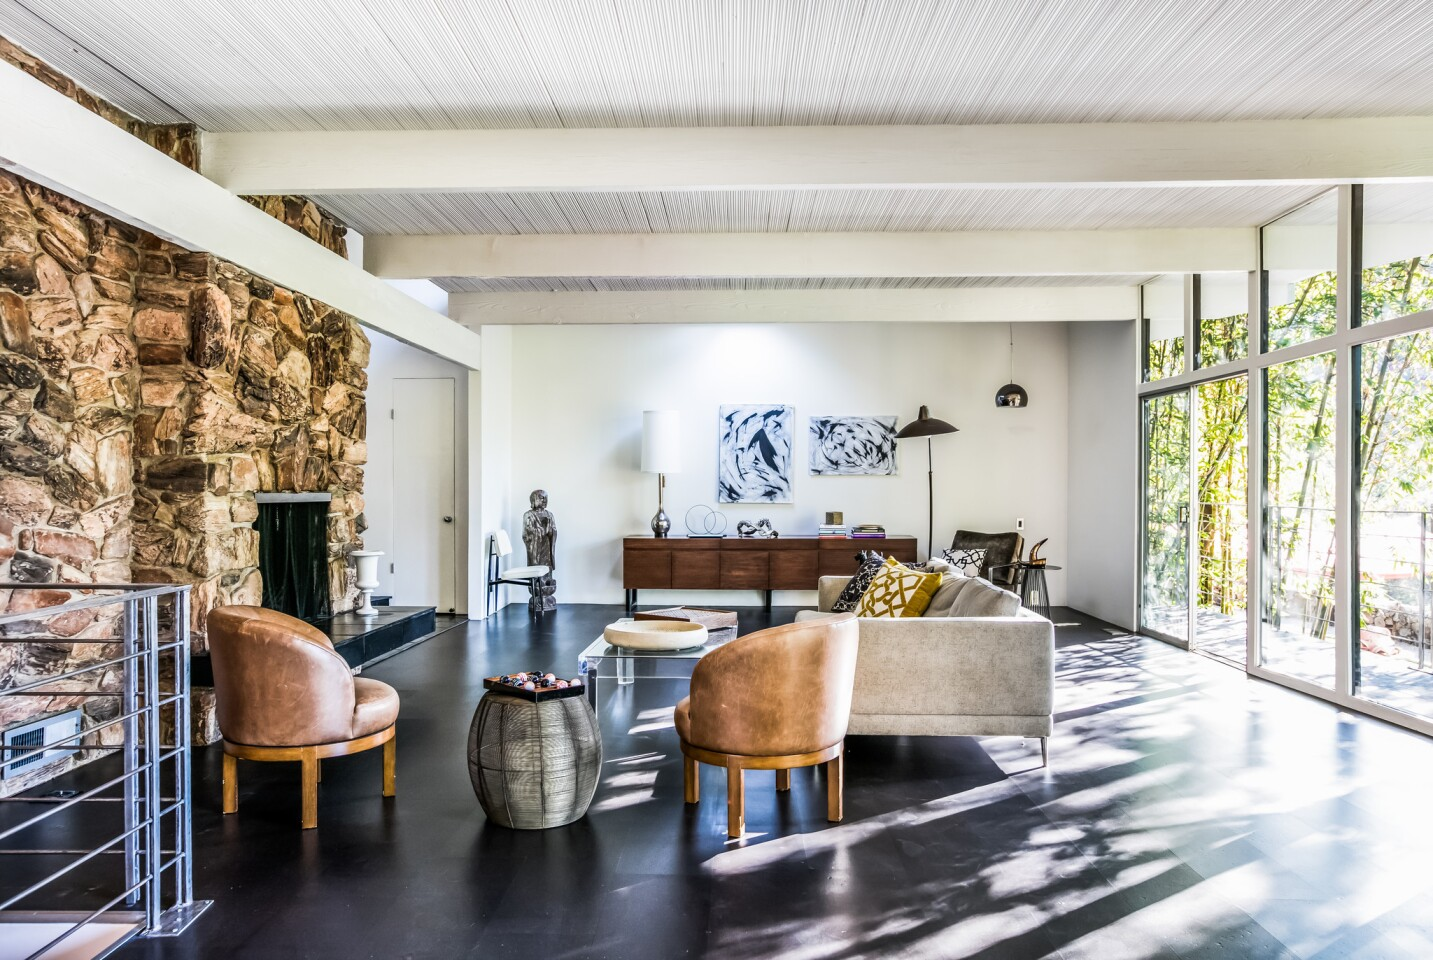 Home of the Day: Hollywood Hills post-and-beam where Ava Gardner once slept